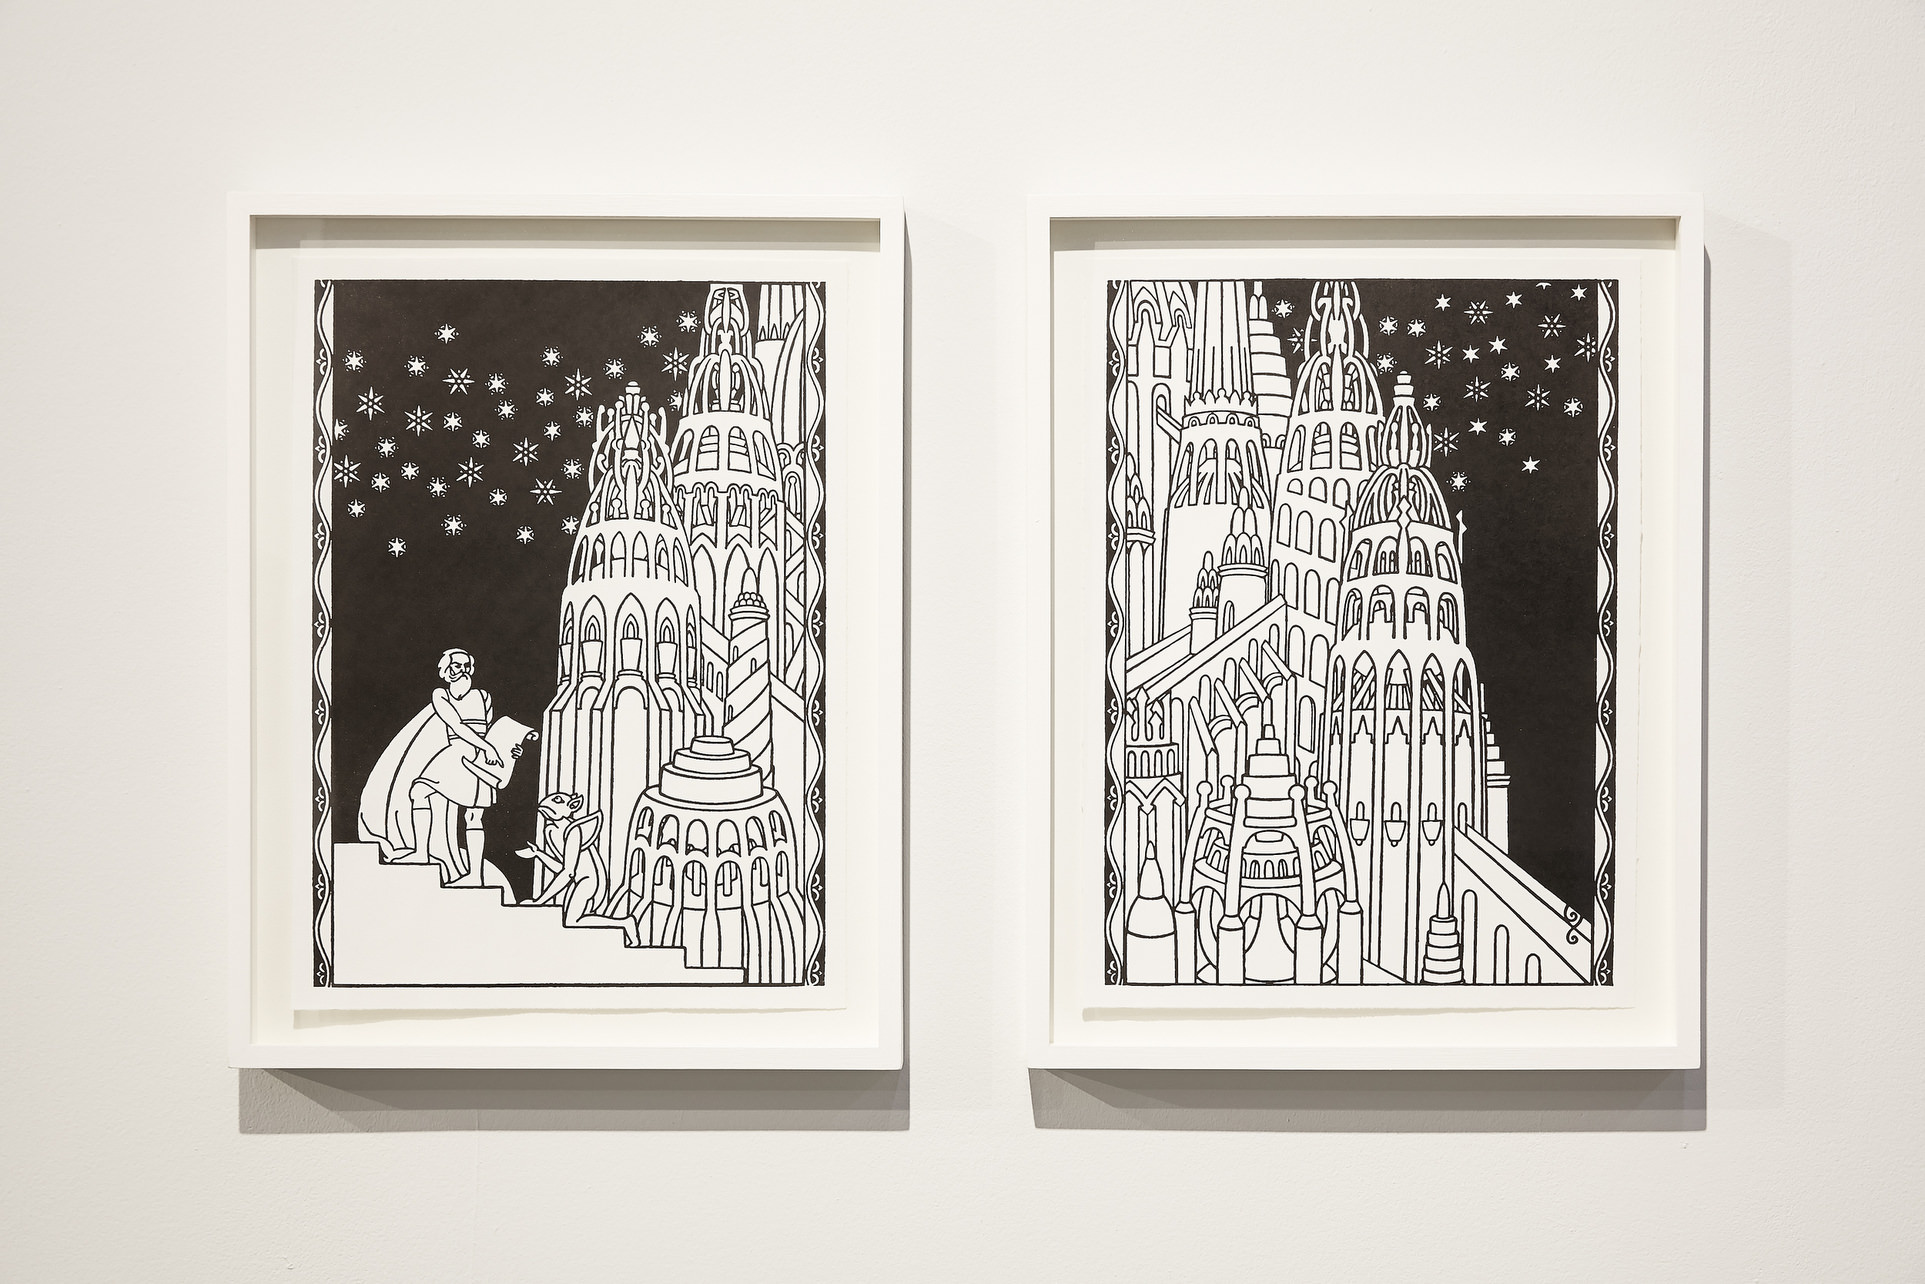 Sean Lynch, Adventure Capital, 2015, lithograph print, framed, 49×38 cm each